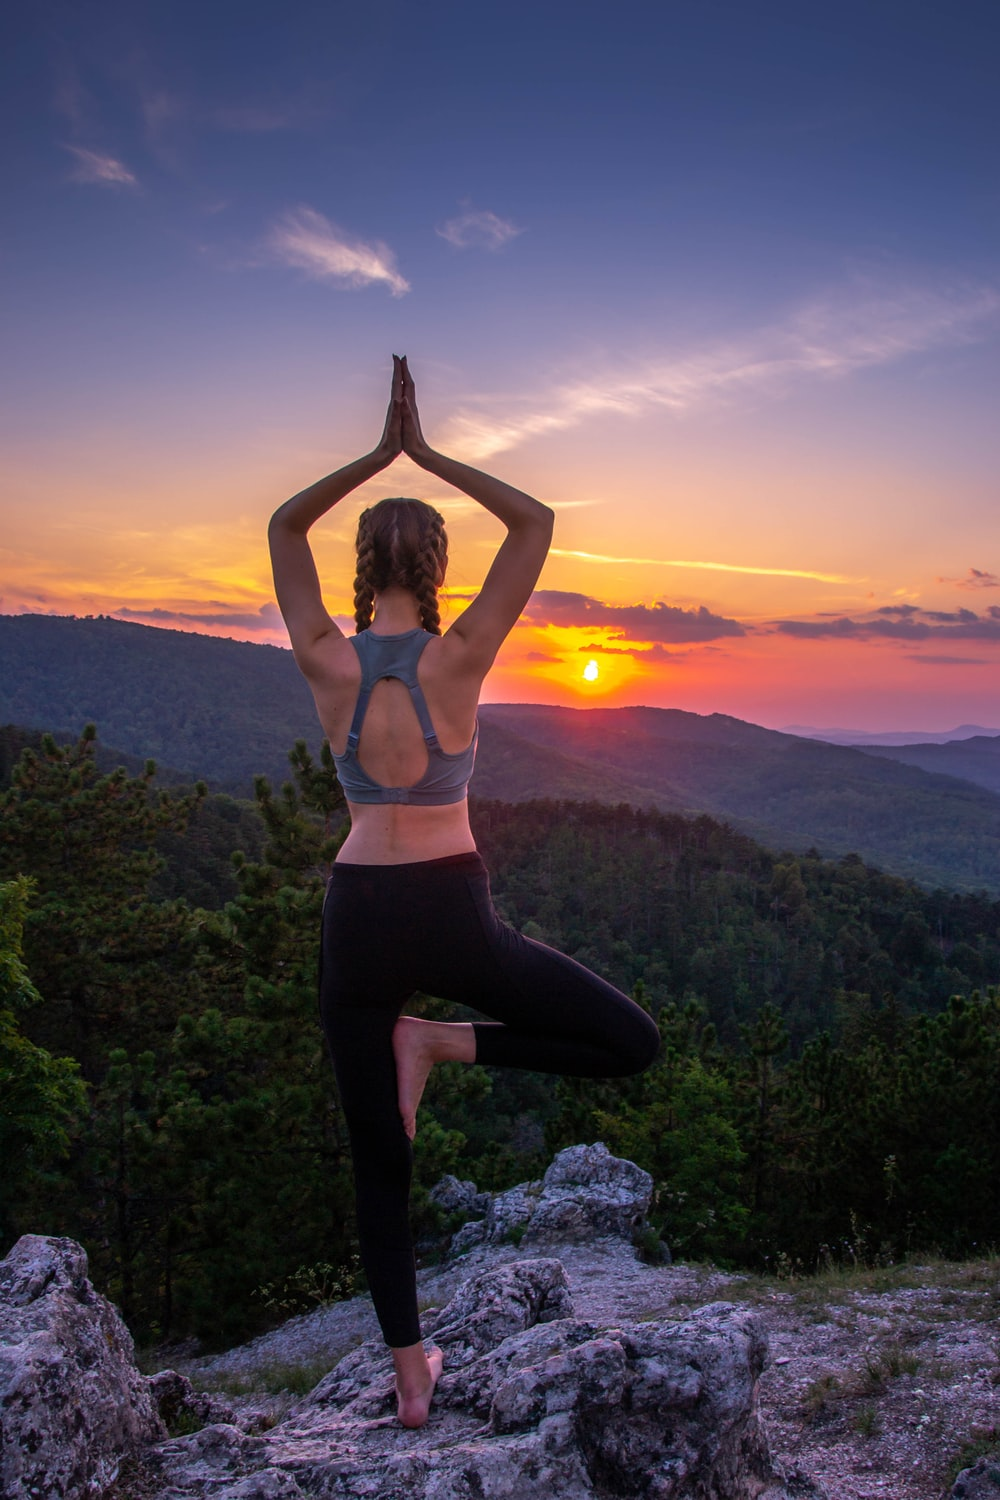 woman in black leggings standing on rock formation during sunset